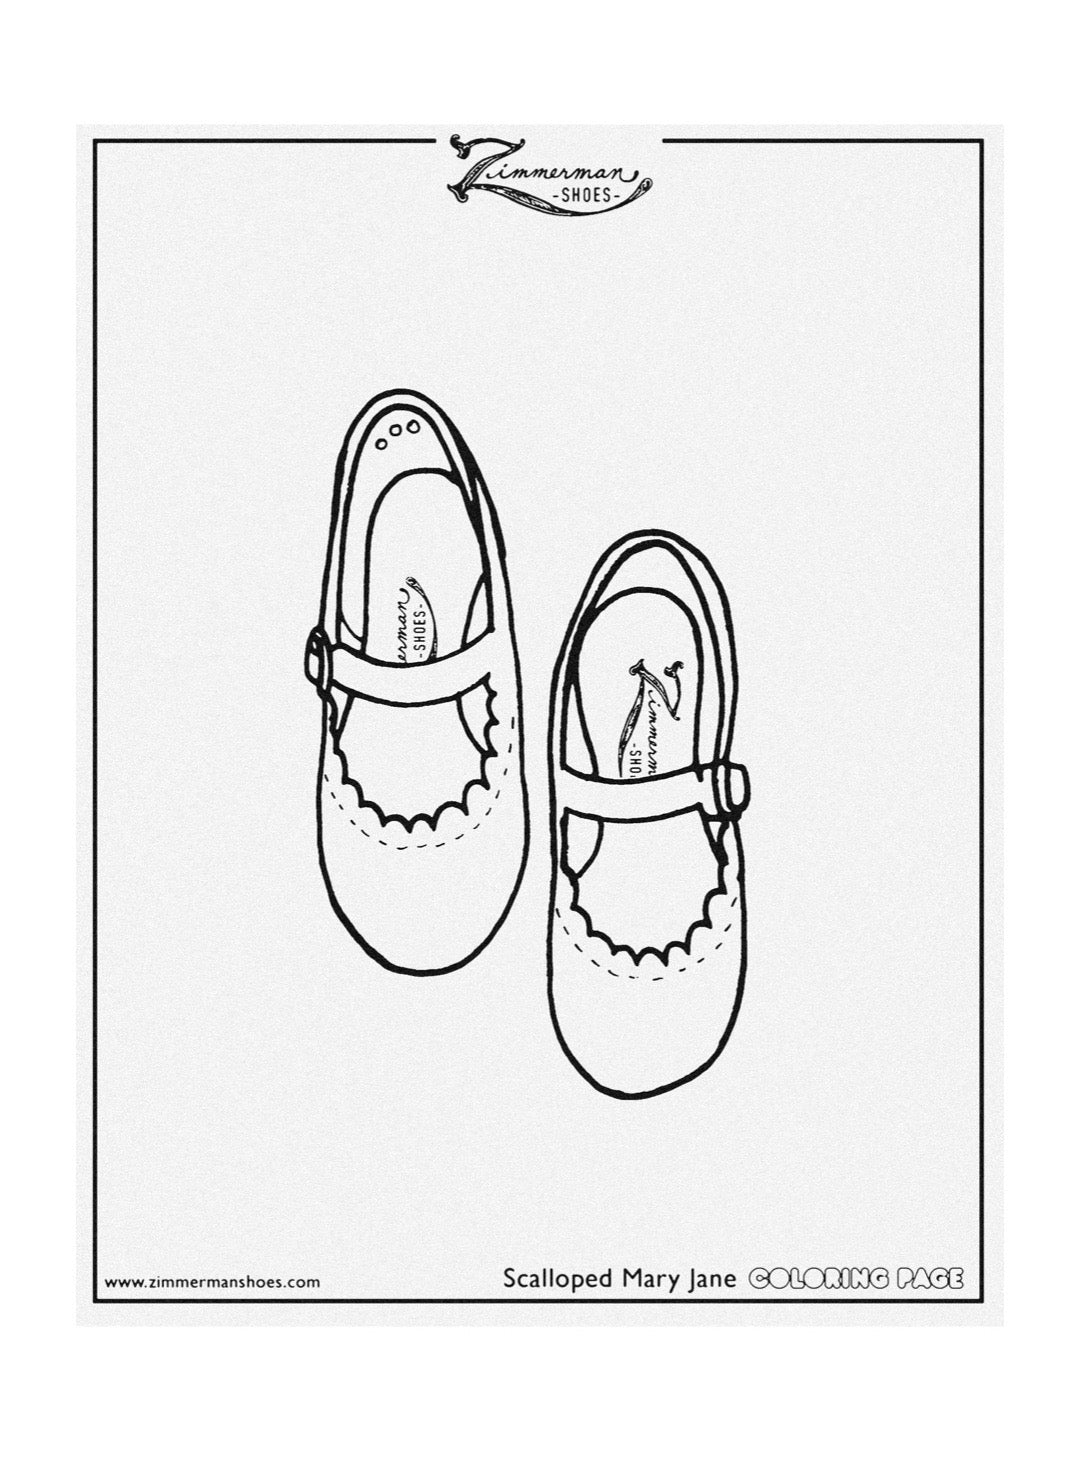 zimmerman shoes free coloring page scalloped mary jane